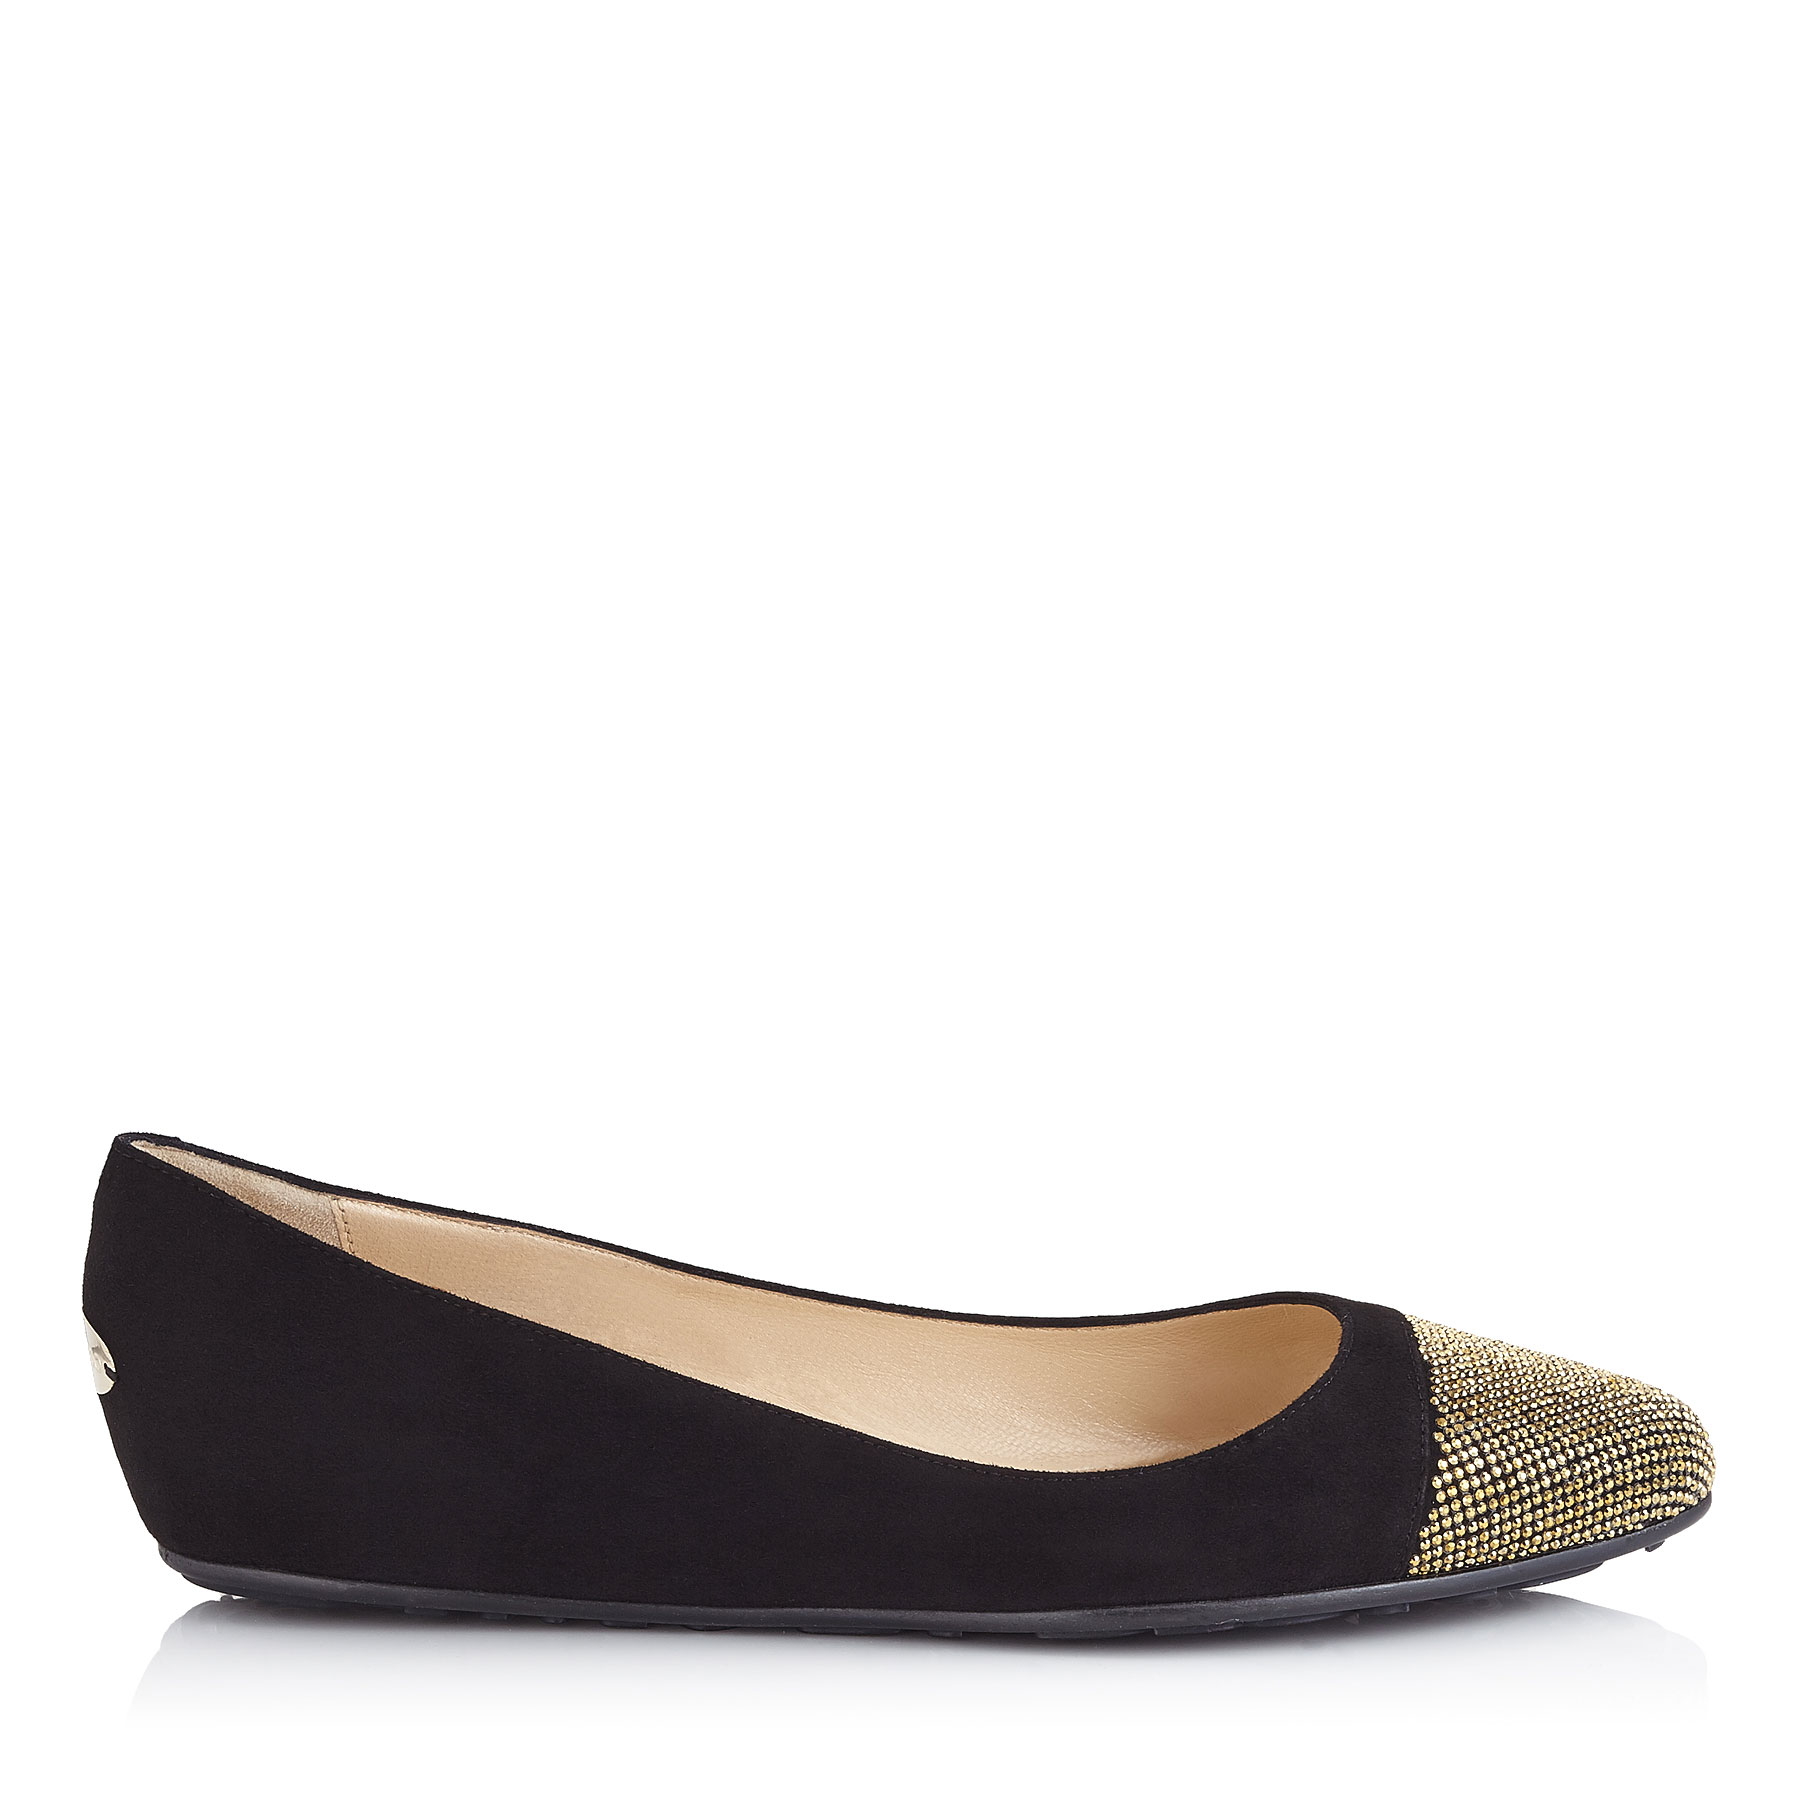 WAINE Black Suede and Metal Micro studs Ballet Flats